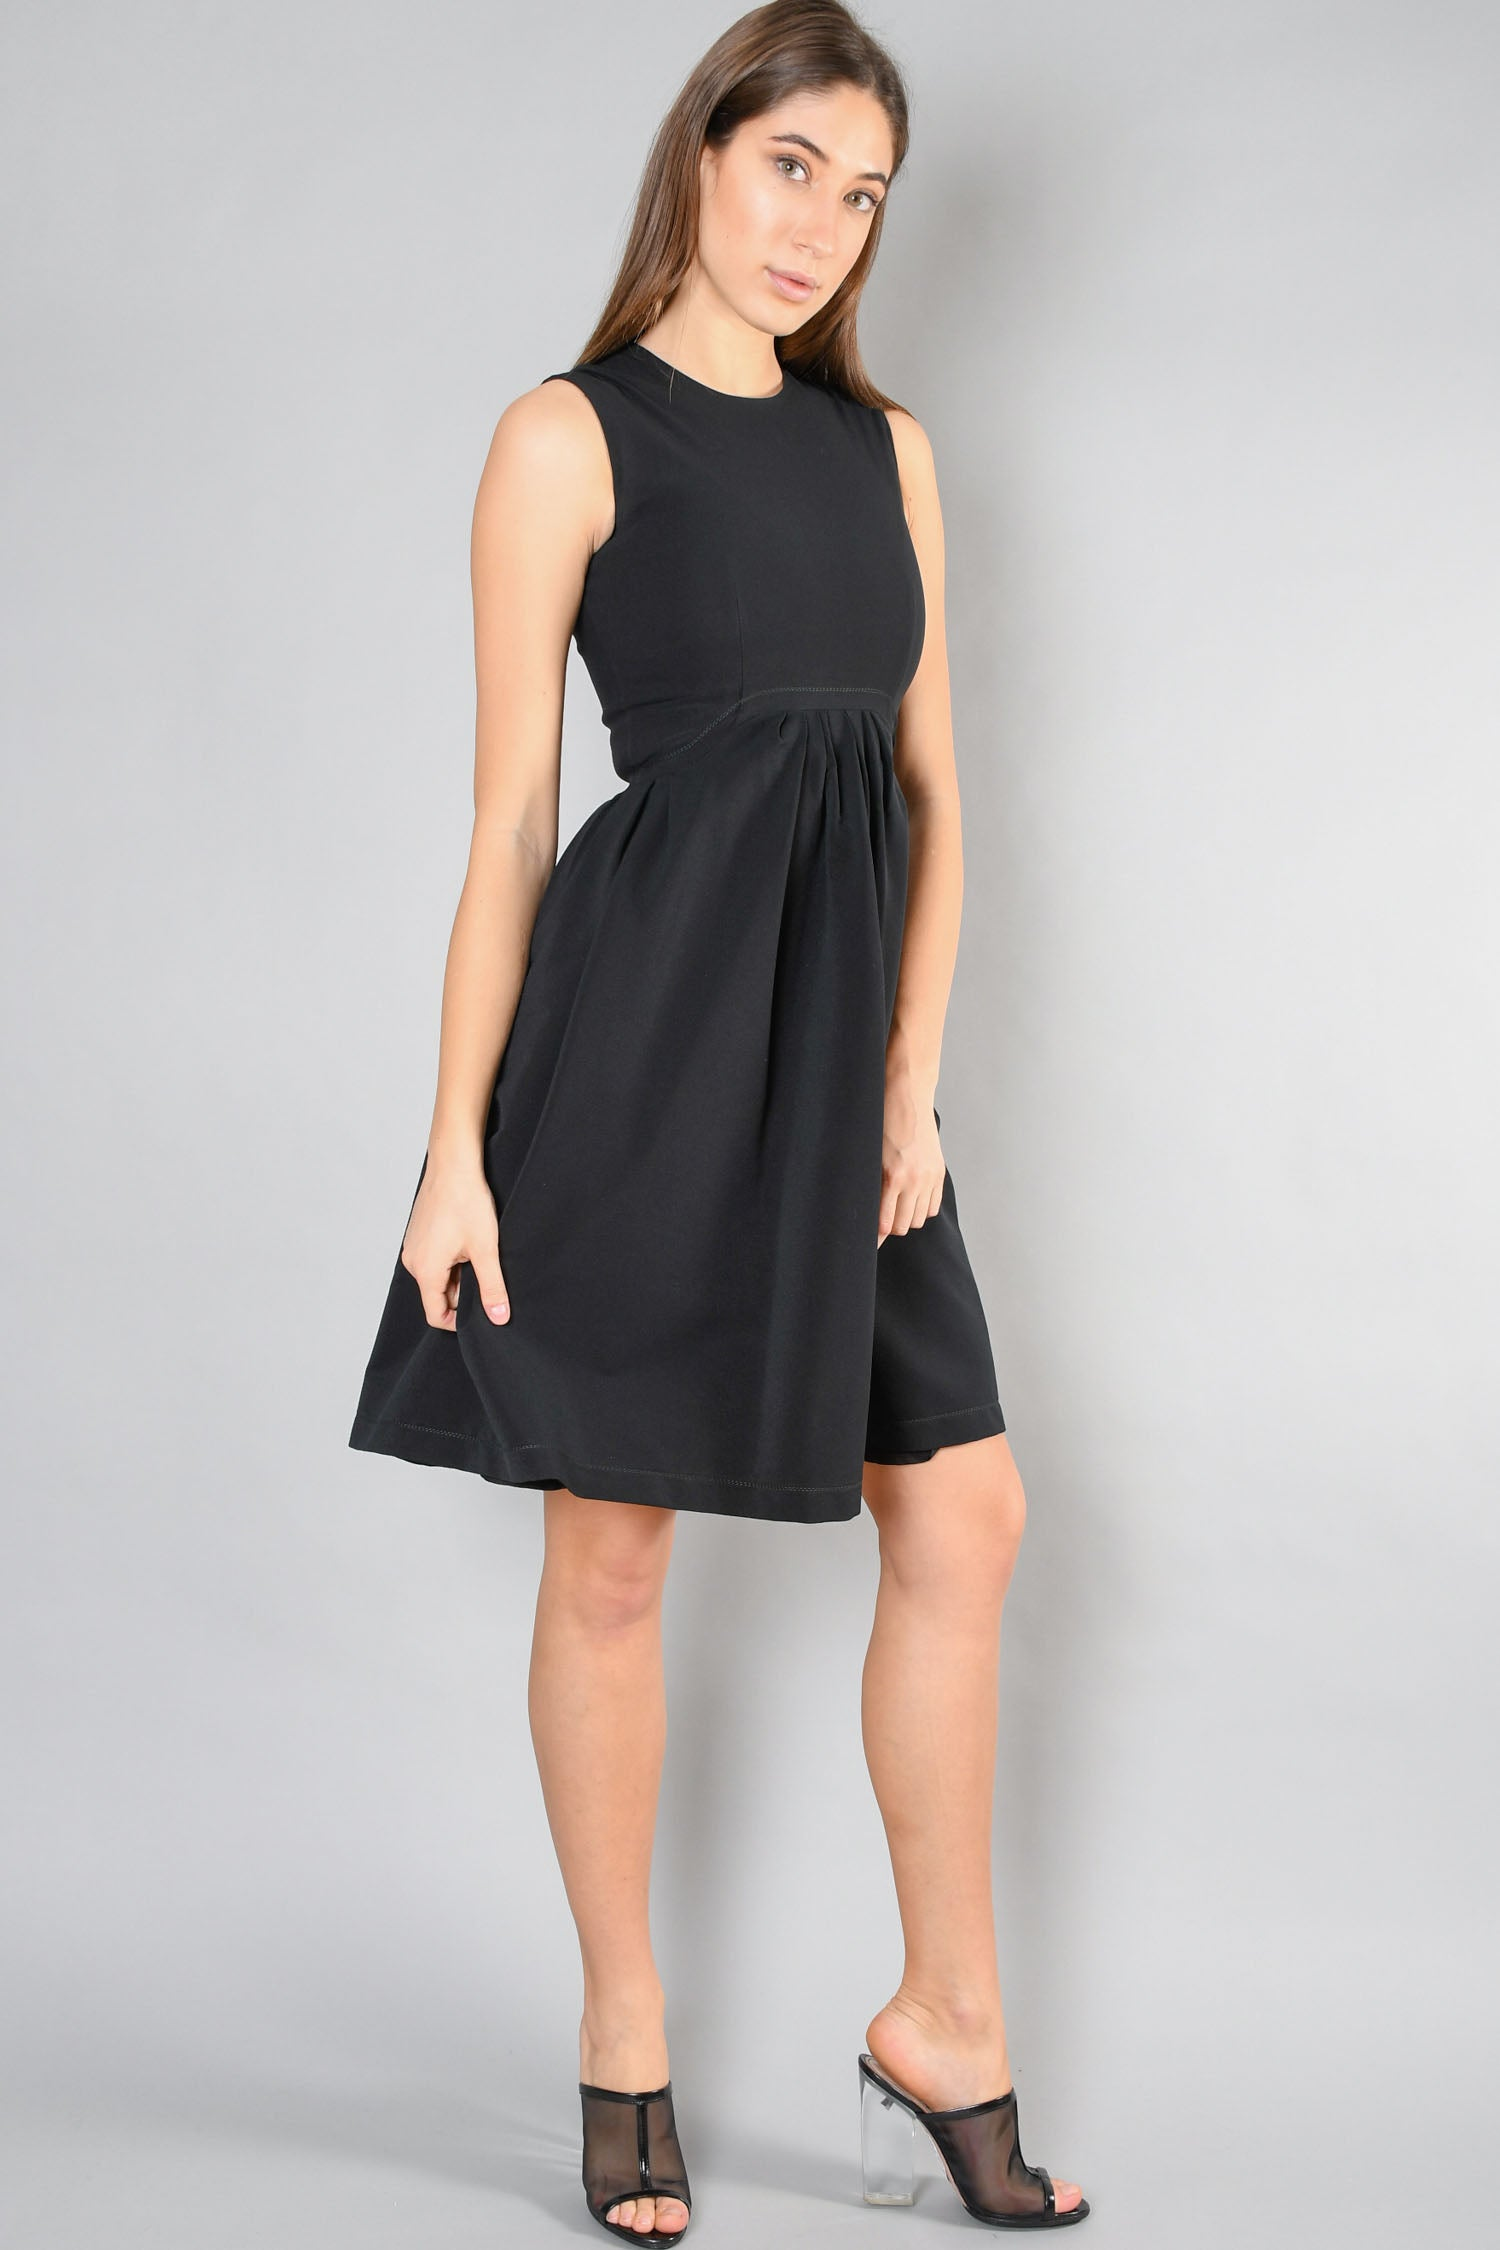 Preen By Thornton Bregazzi Black Dress Size XS